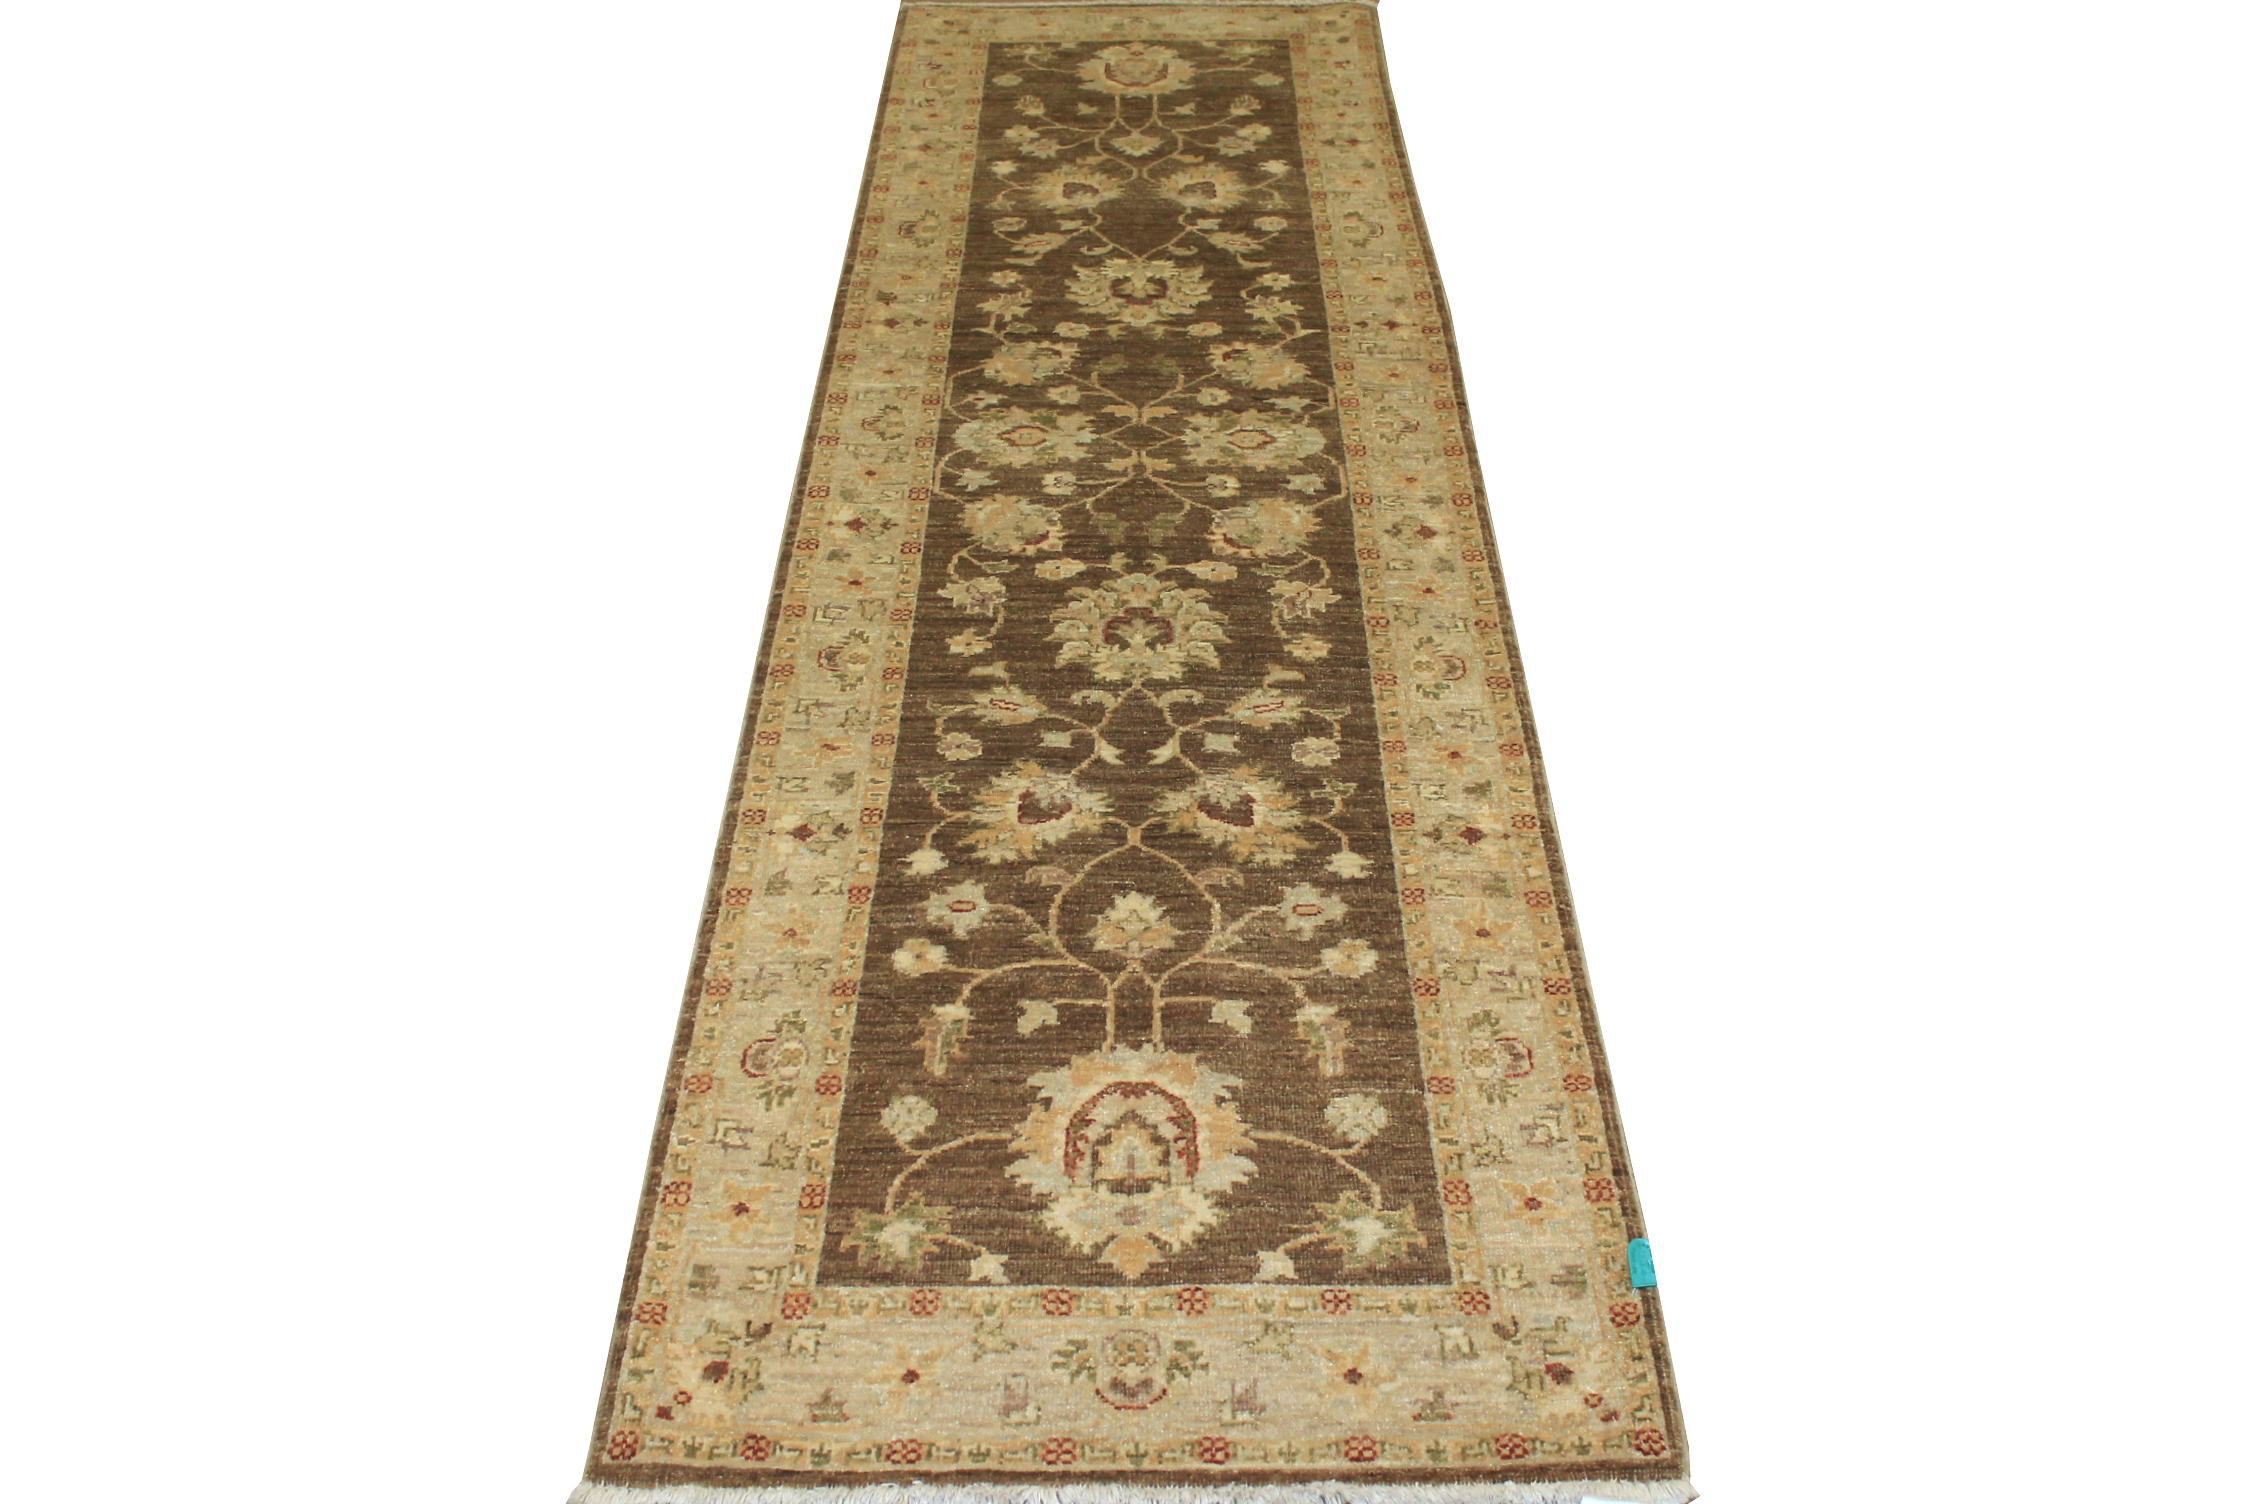 10 ft. Runner Peshawar Hand Knotted Wool Area Rug - MR10897